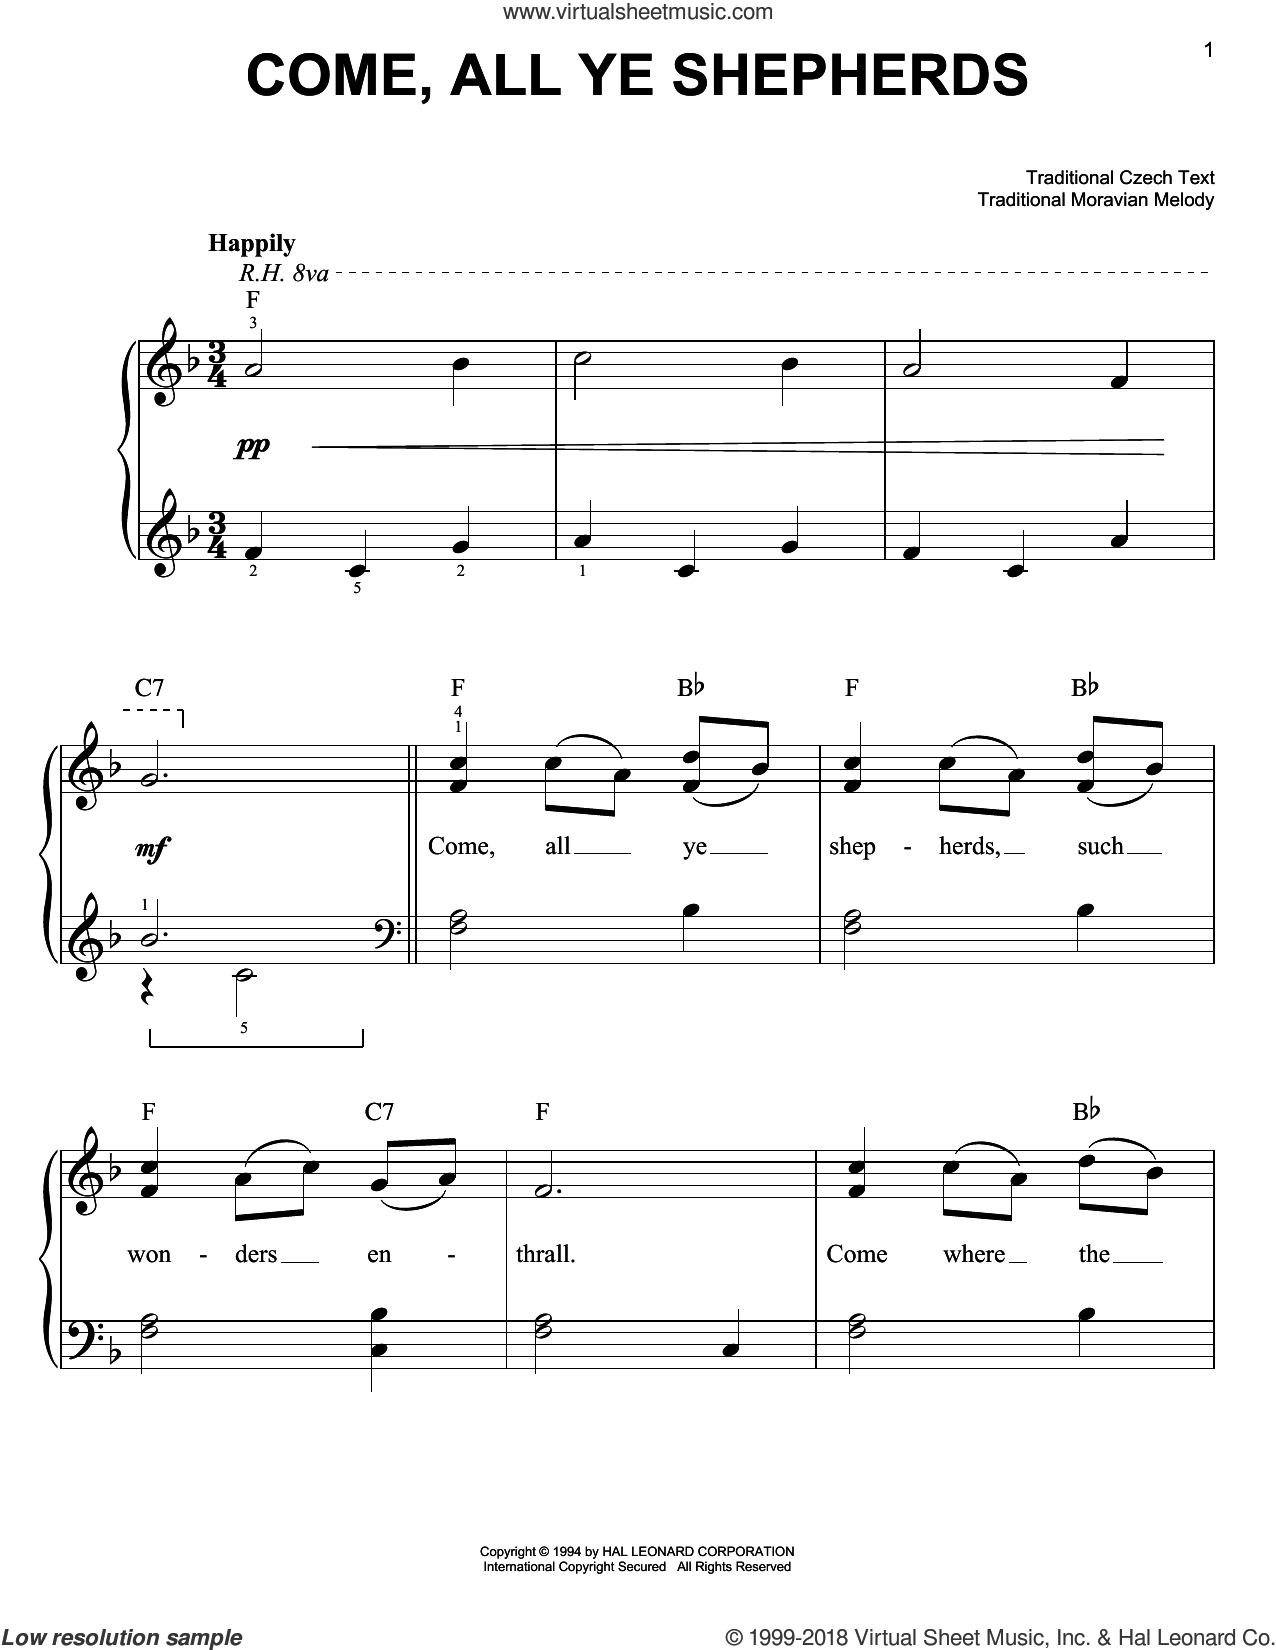 Come, All Ye Shepherds sheet music for piano solo